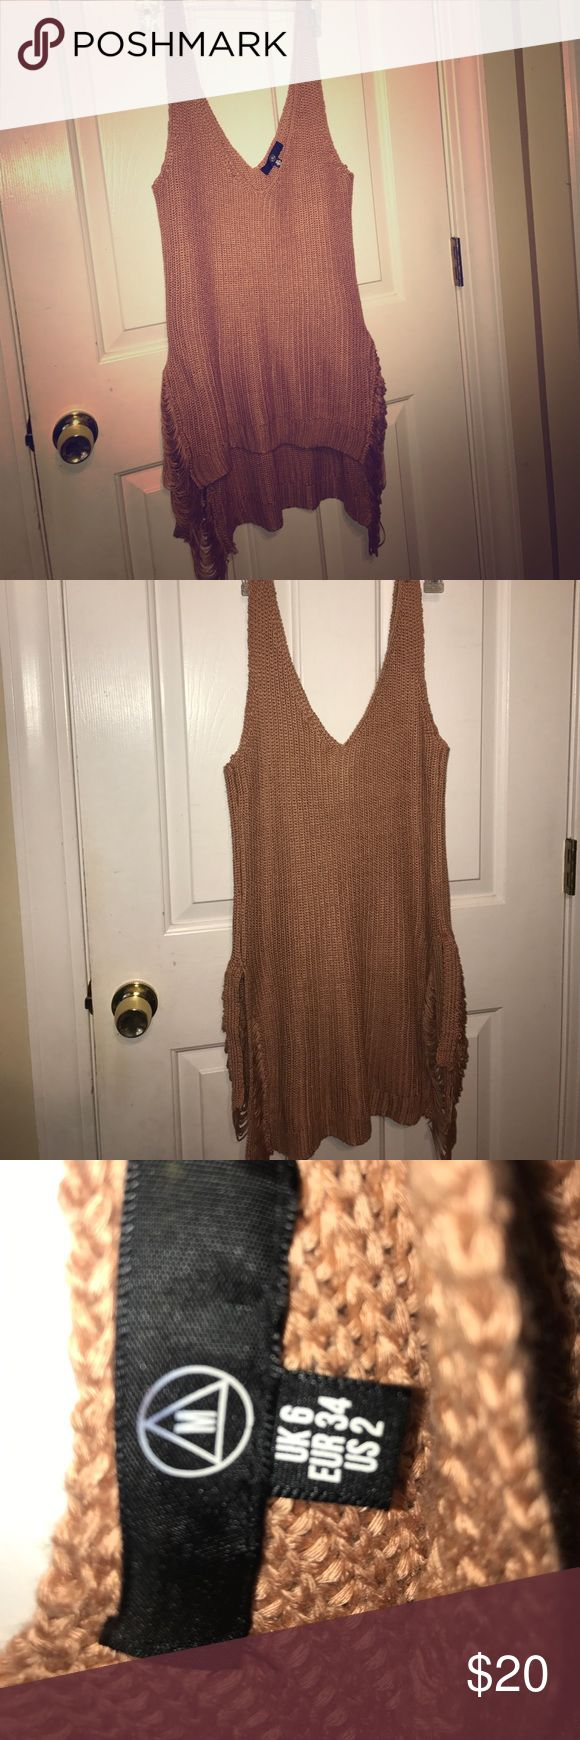 Misguided sweater tank/tunic Shredded slides. Relaxed loose fit. Copper Color. From website Misguided....US SIZE 2.....but fits like a US size 4/6 Tops Tunics